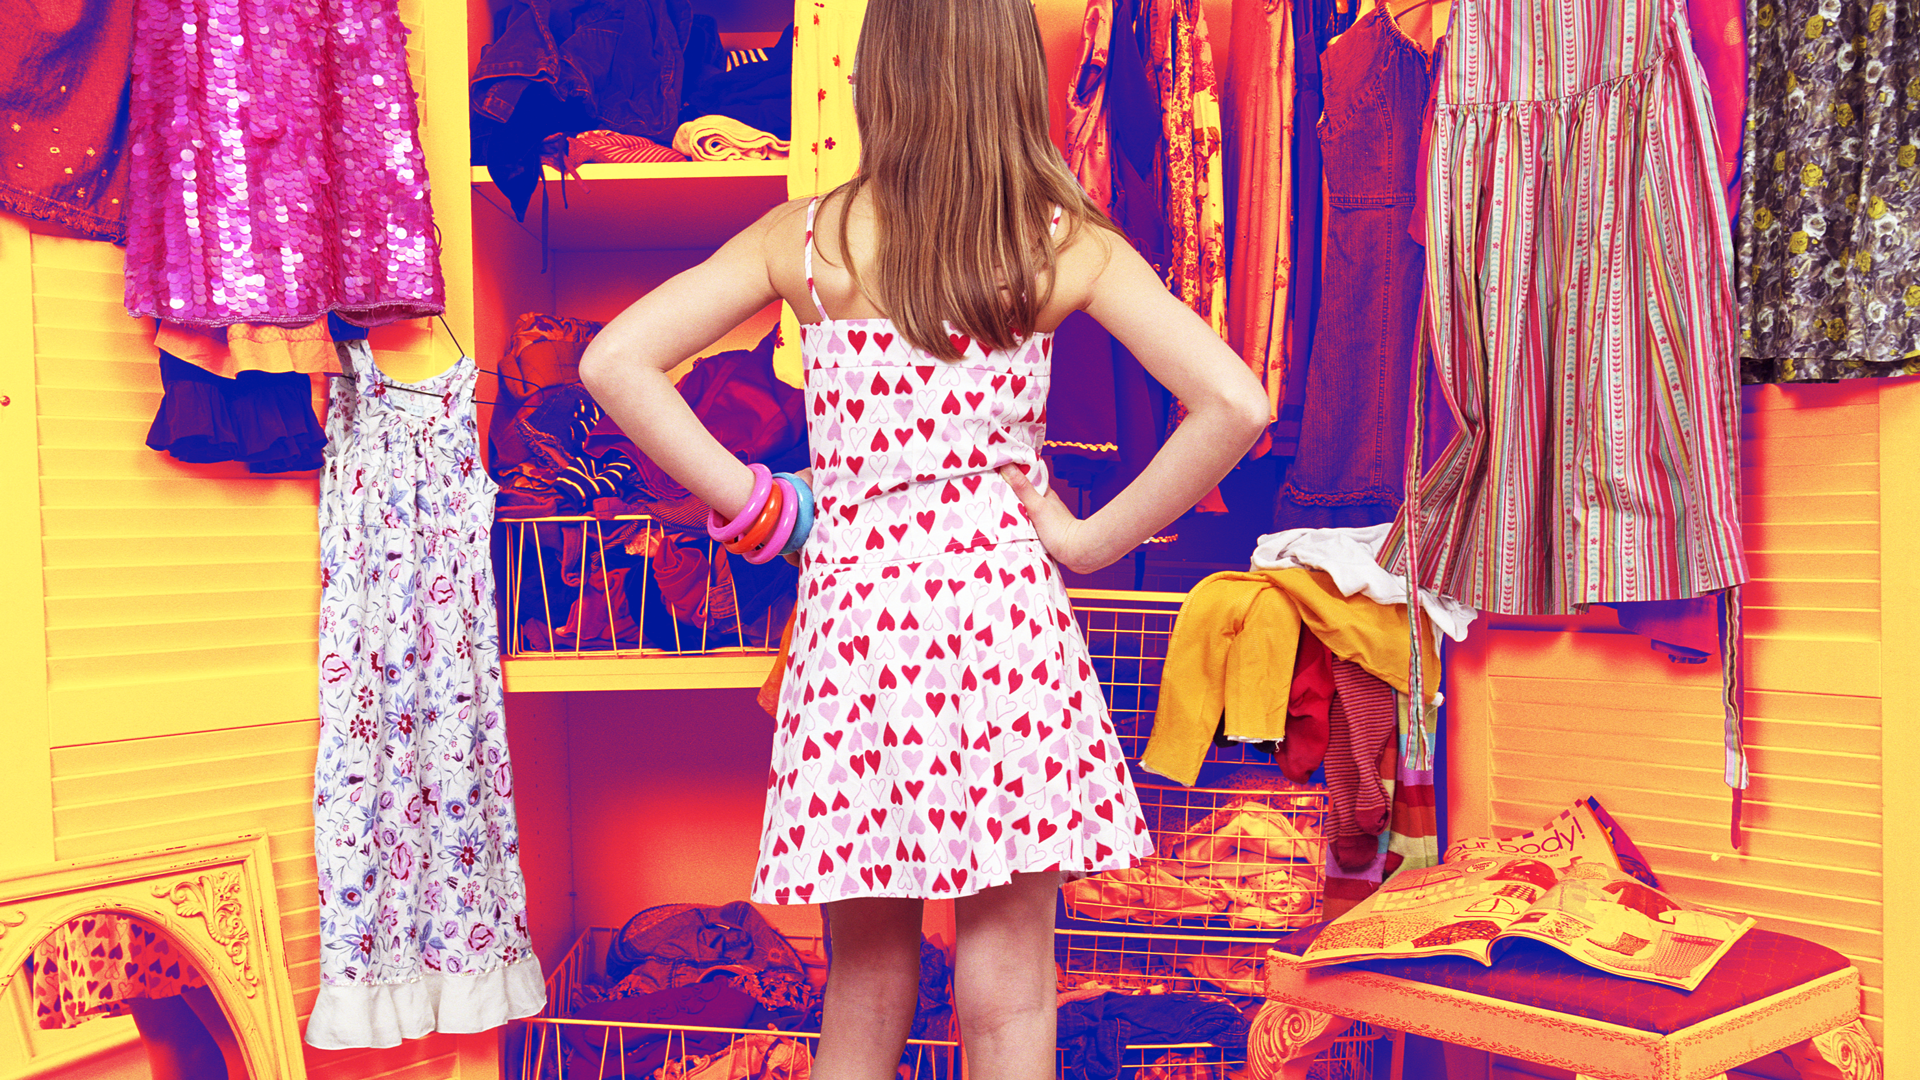 c82c5b41 Should Parents Care What Their Teen Wears? – SheKnows